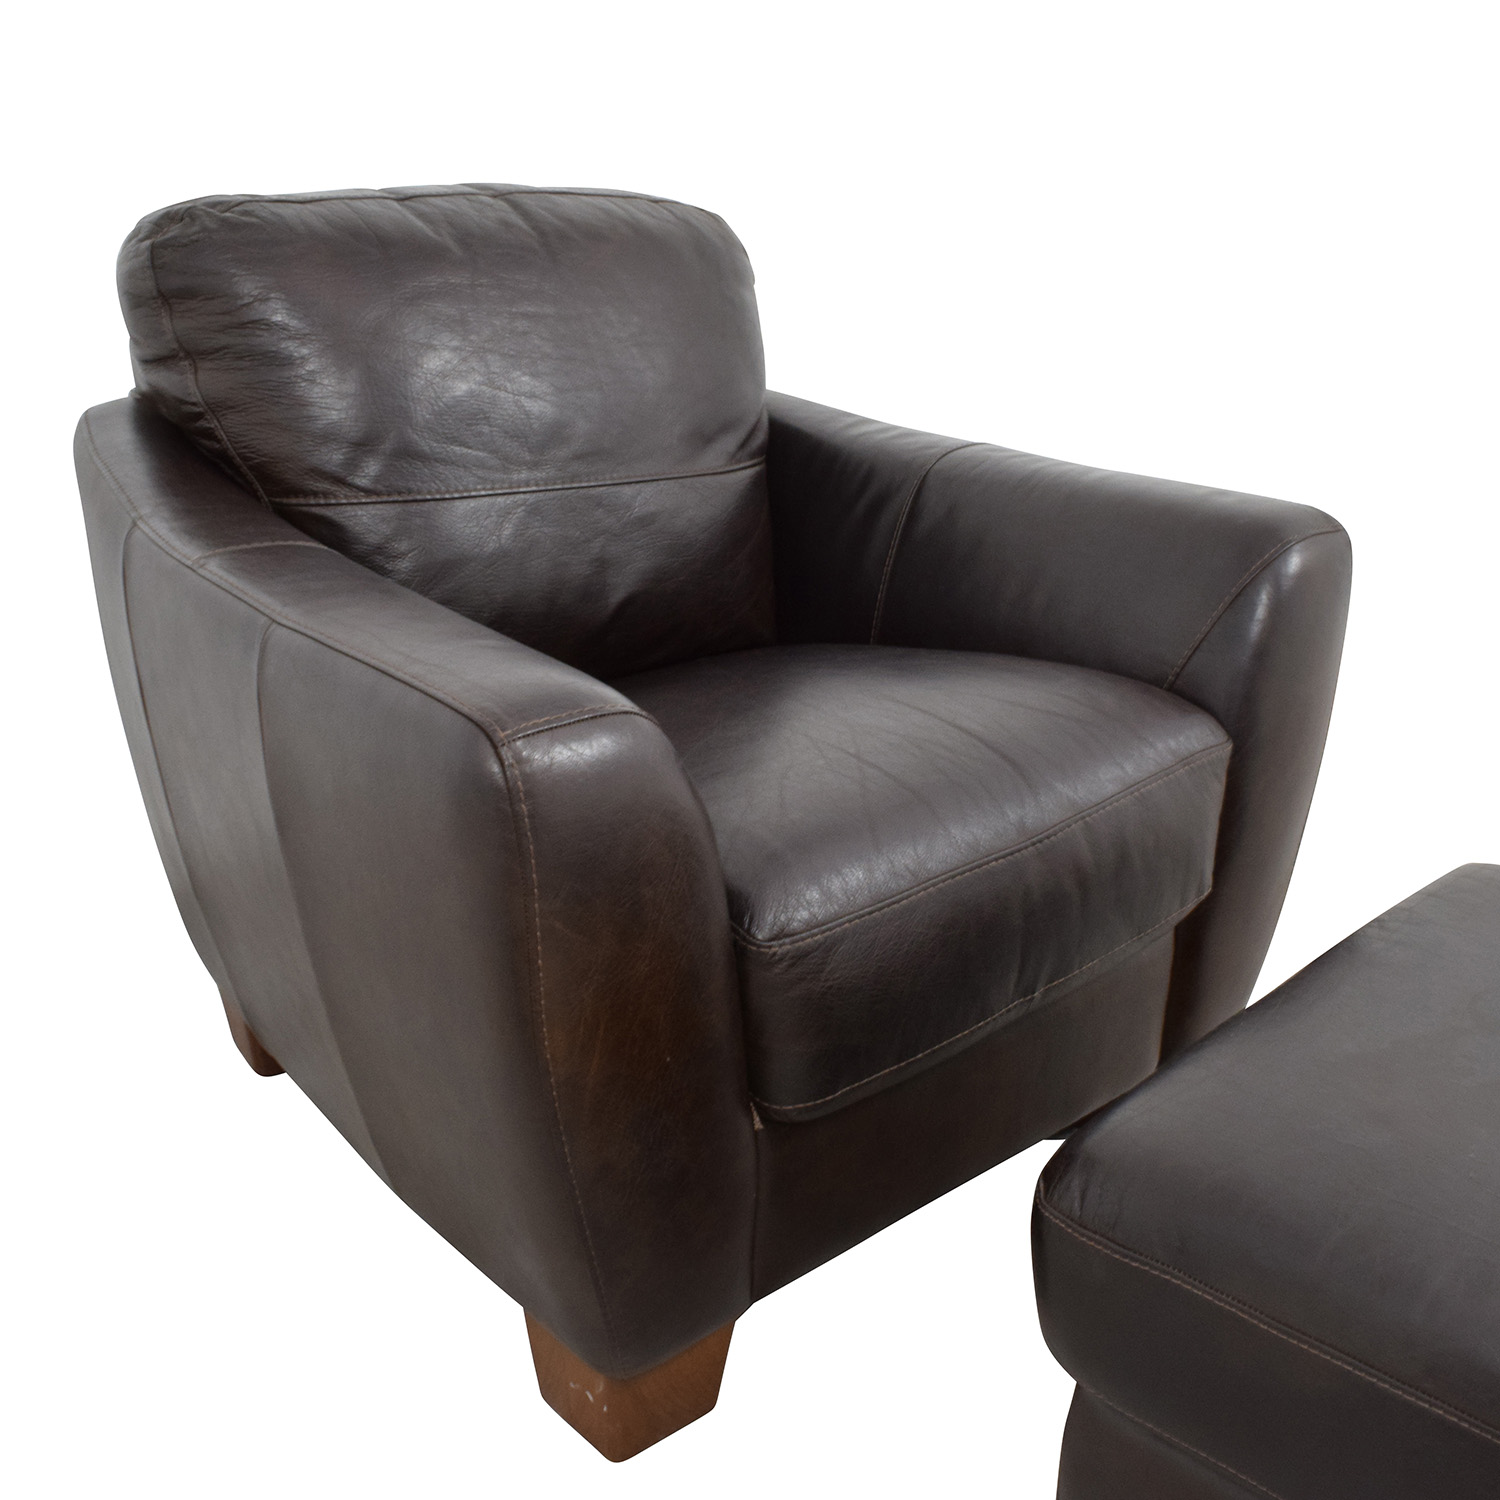 Captivating ... Sofitalia Sofitalia Dark Brown Leather Armchair And Ottoman Discount ...